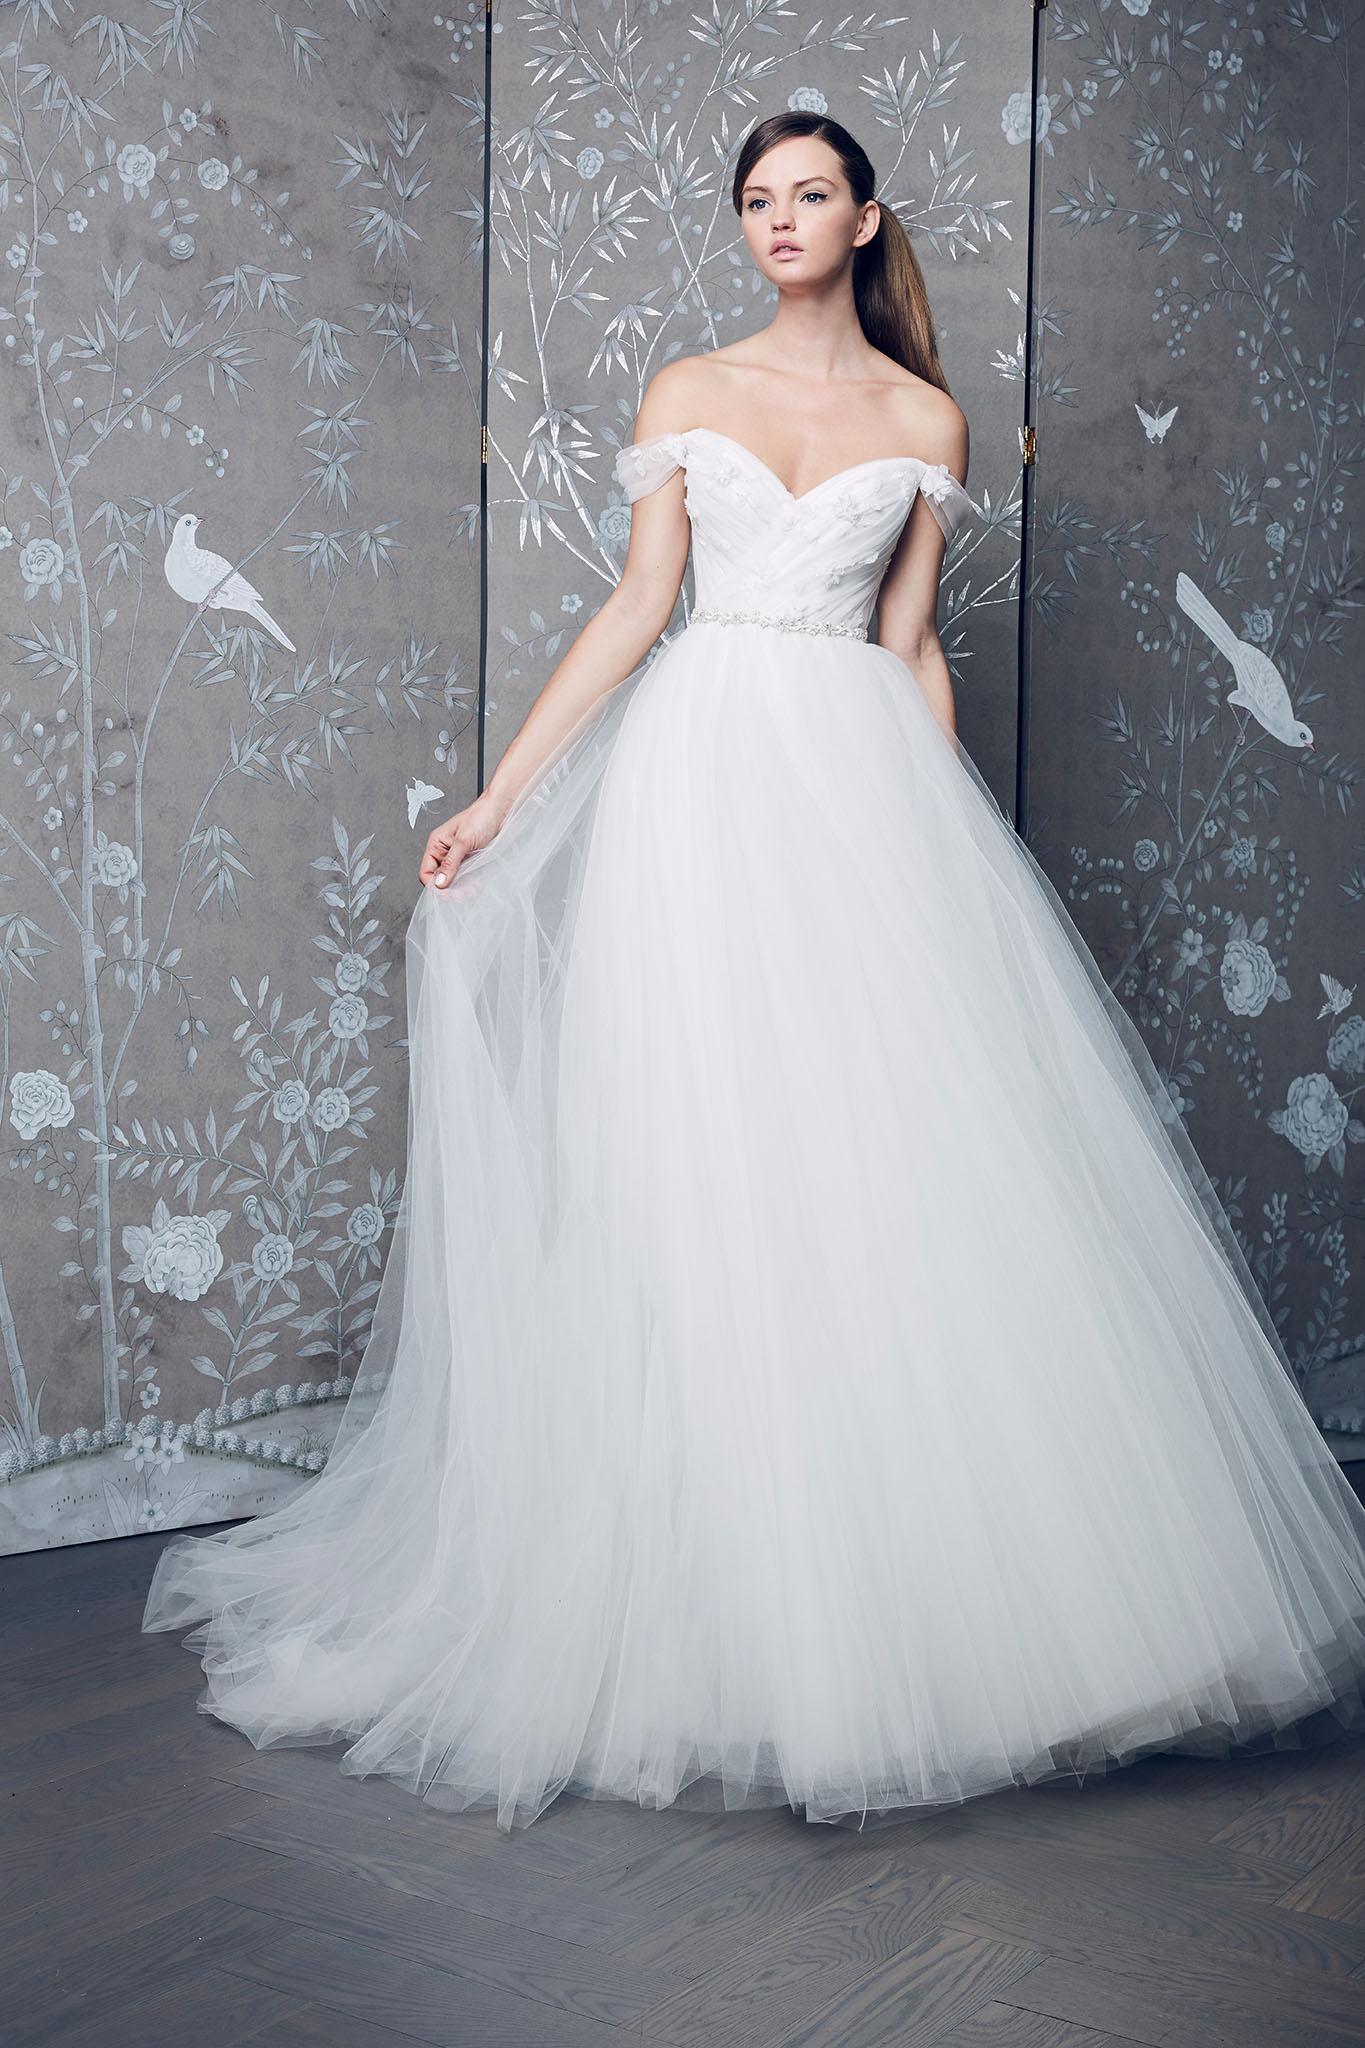 Legends Romona Keveza Bridal Fall 2018